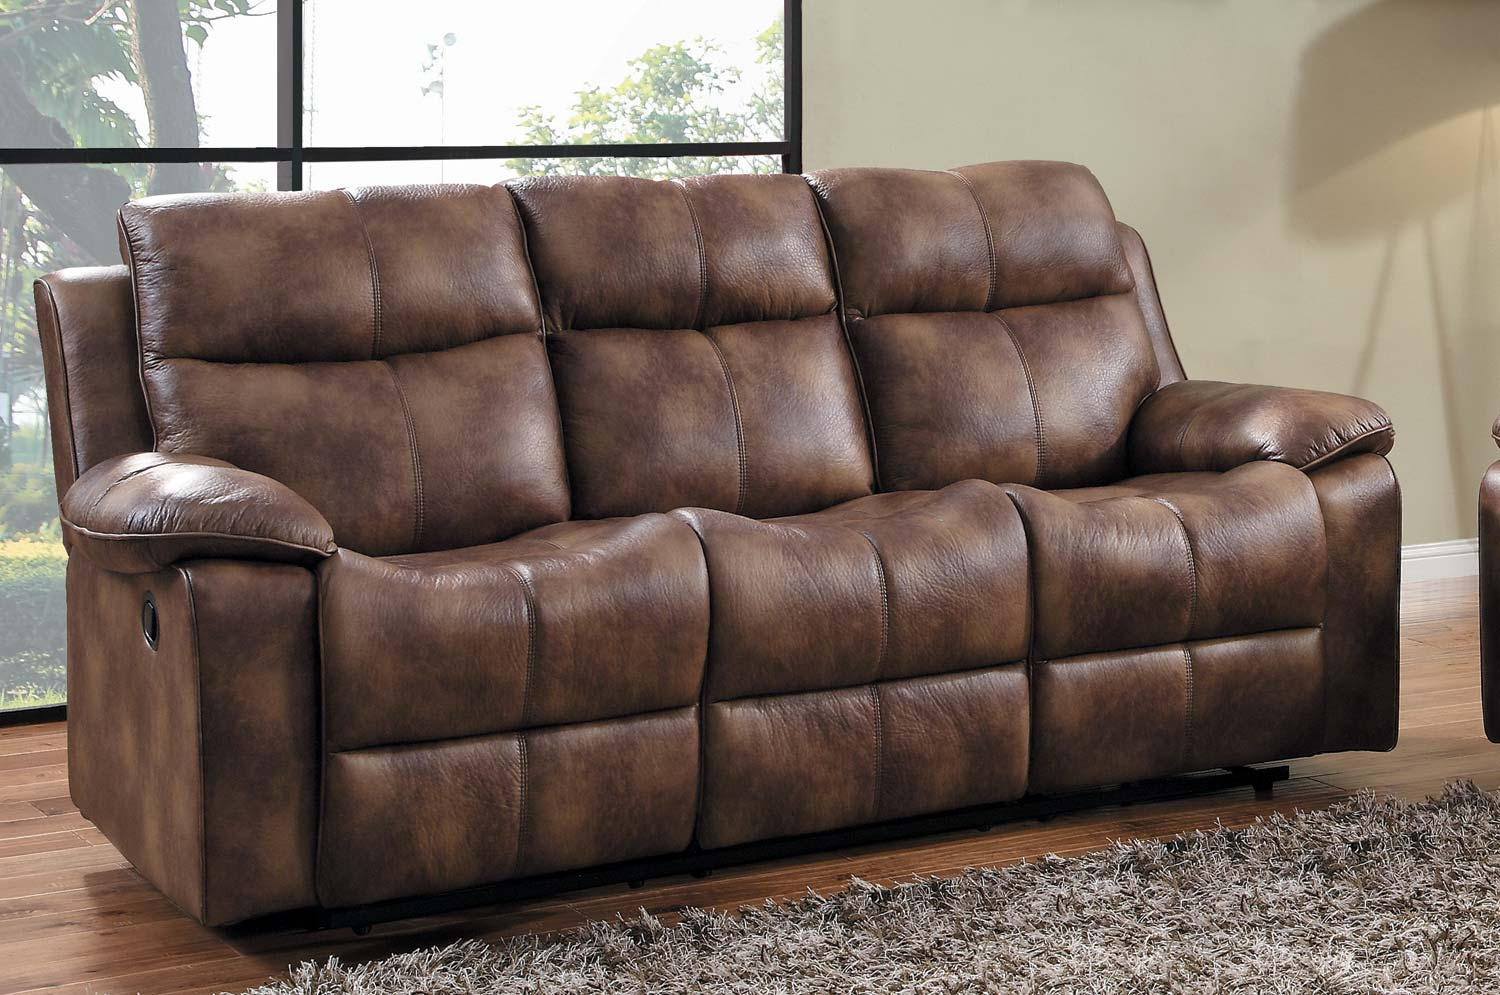 Homelegance Brooklyn Heights Double Recliner Sofa - Polished Microfiber & Homelegance Brooklyn Heights Double Recliner Sofa - Polished ... islam-shia.org